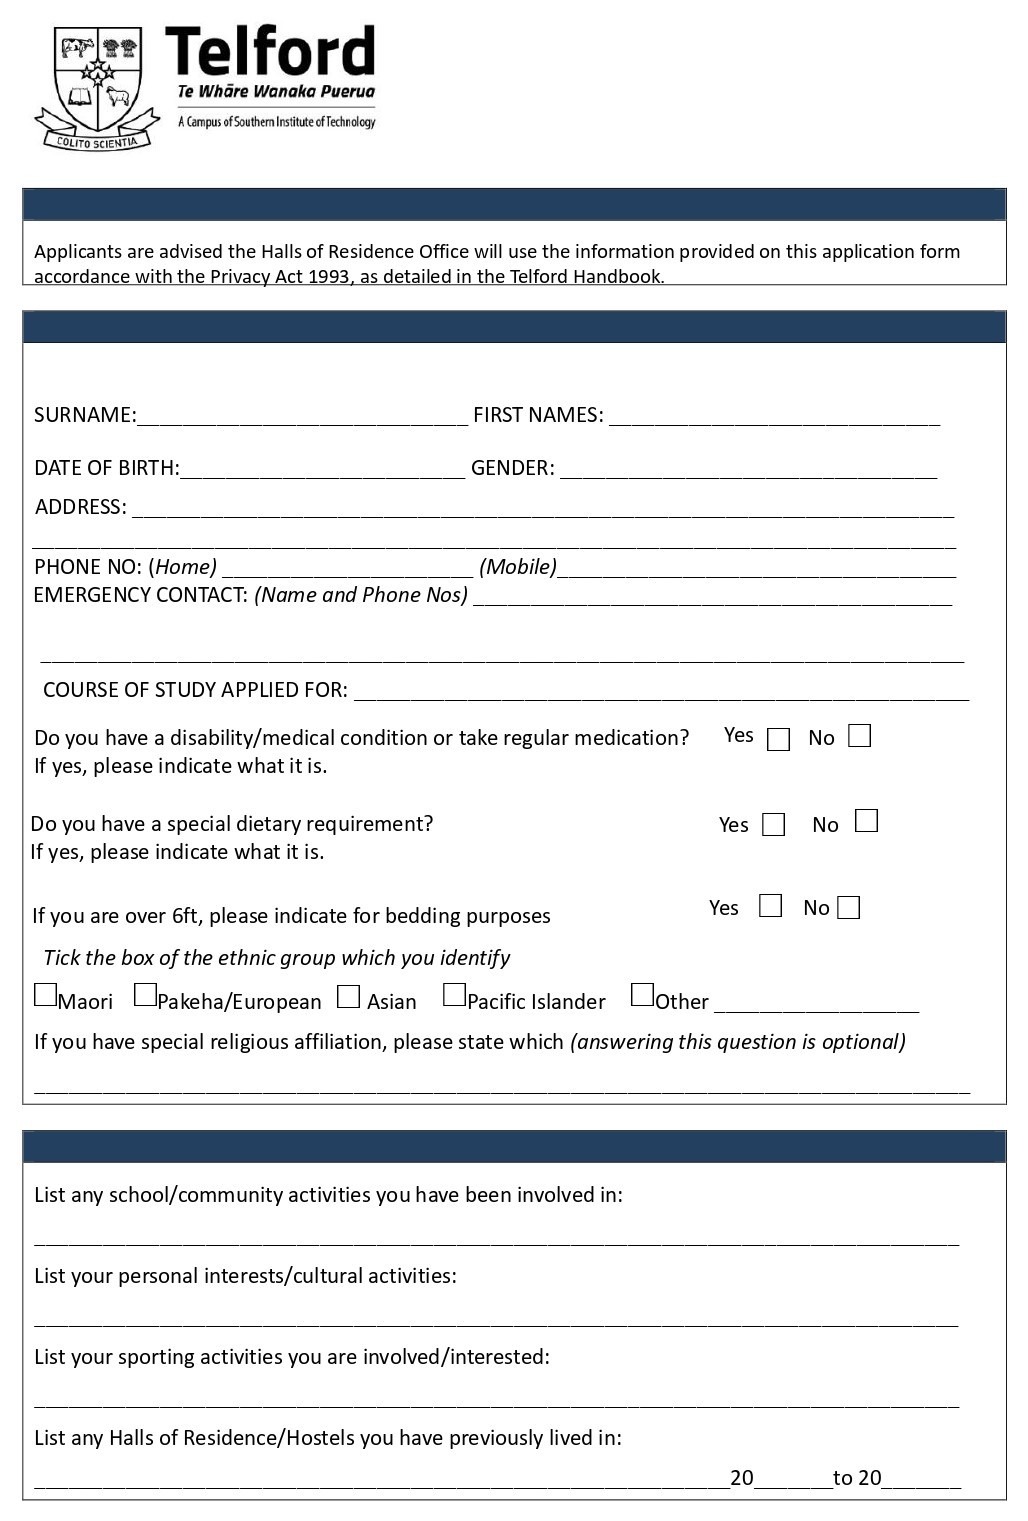 Telford Accommodation Application